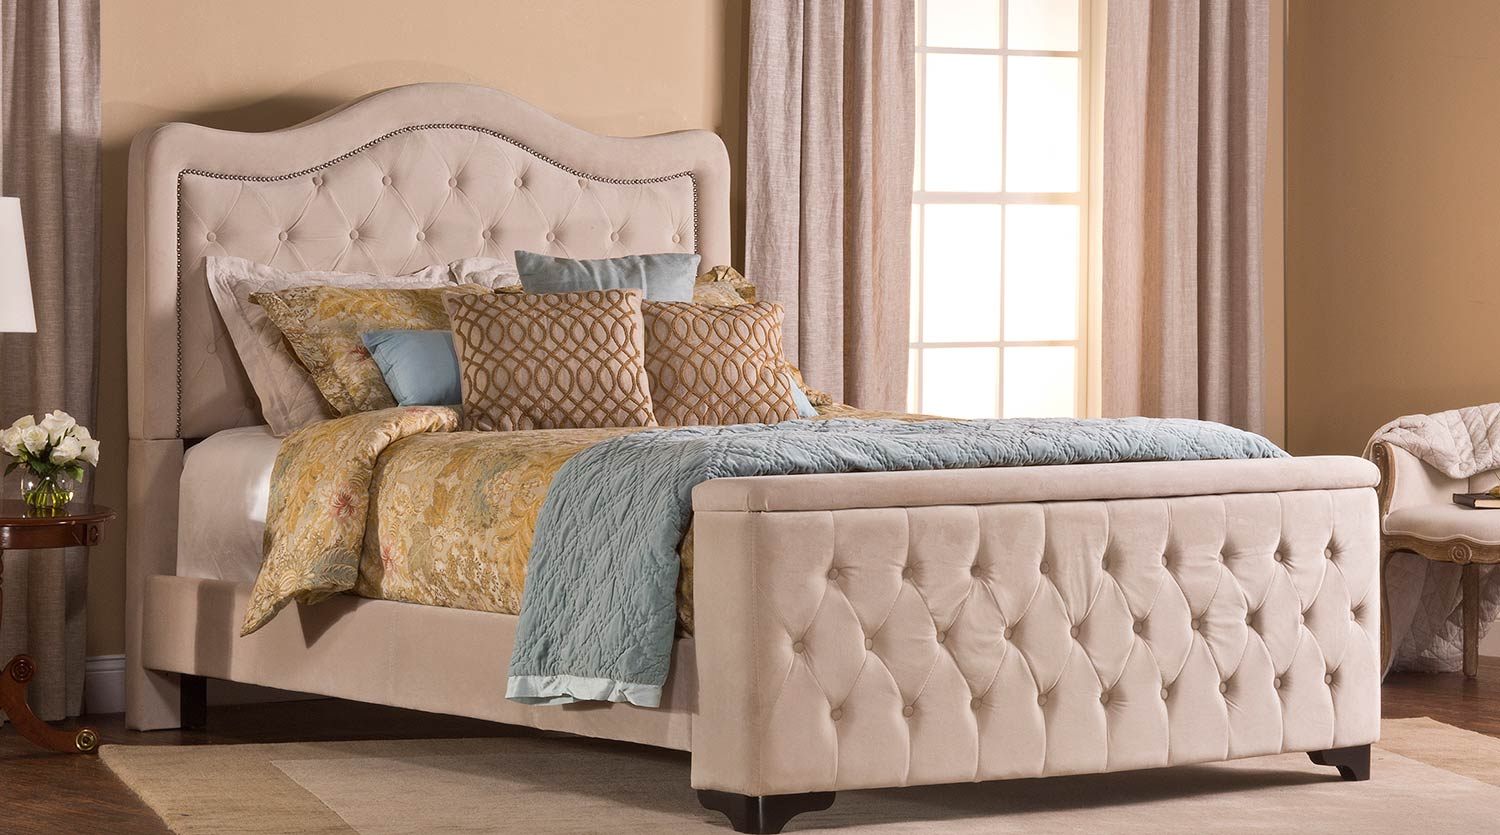 Hillsdale Trieste King Bed - Storage Footboard - Buckwheat